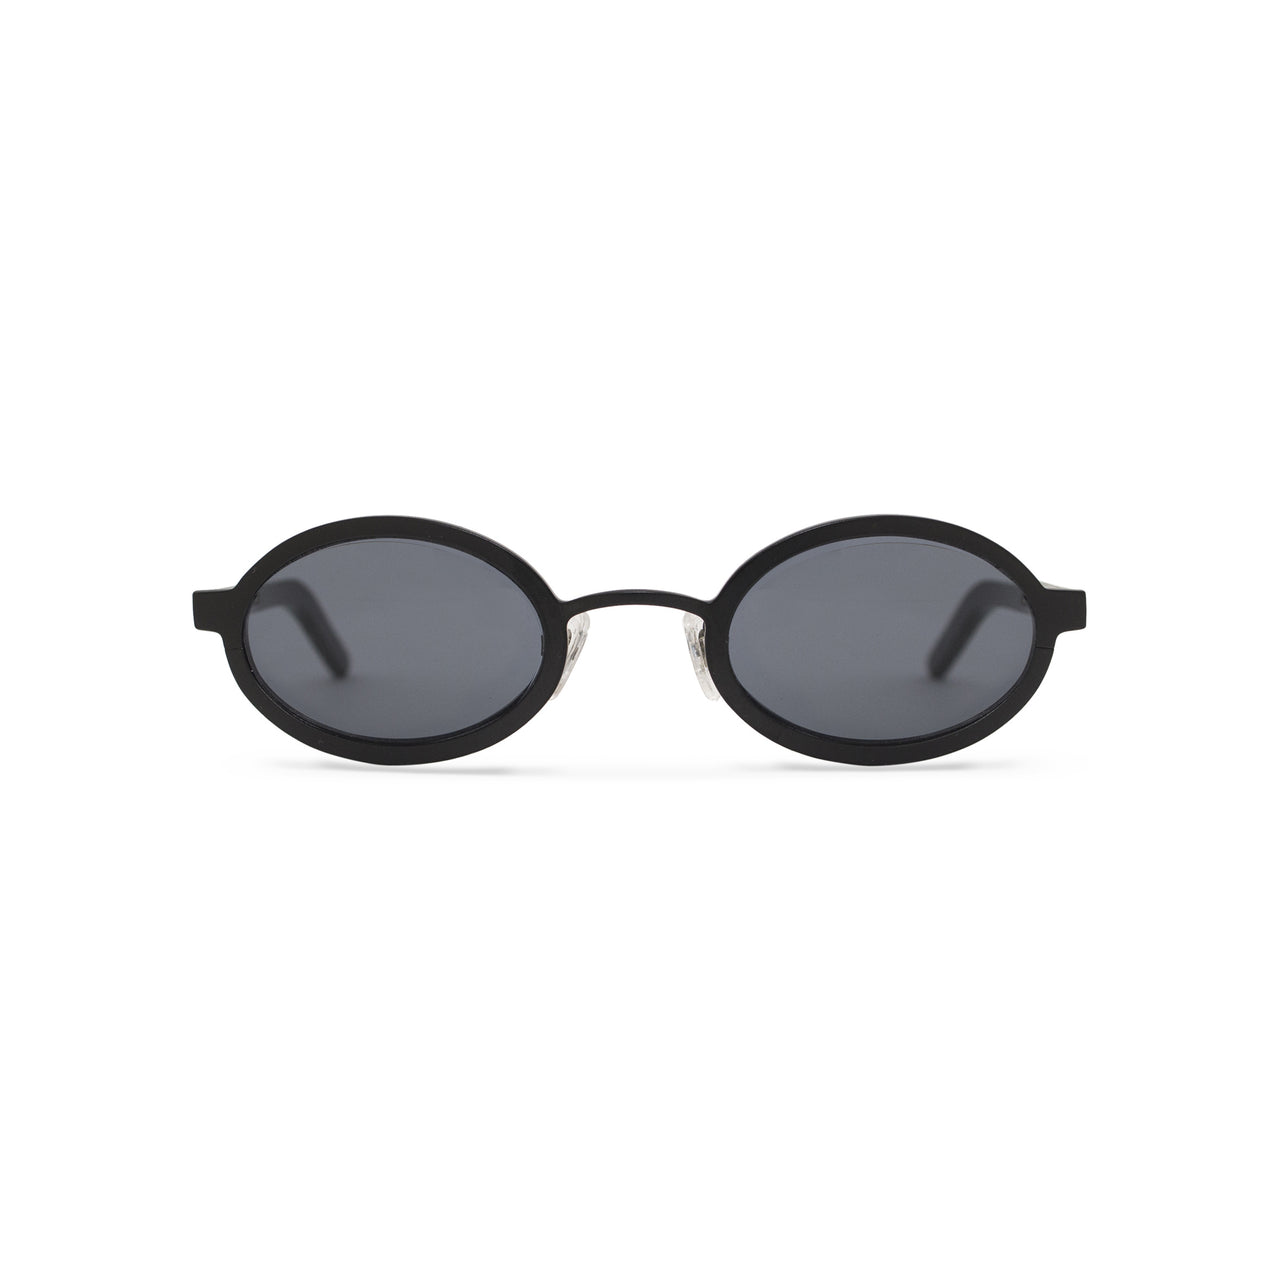 Metal / Horn. Matte Black / Dark. Black Lens. - BLYSZAK eyewear  - eyewear, optical, sunglasses